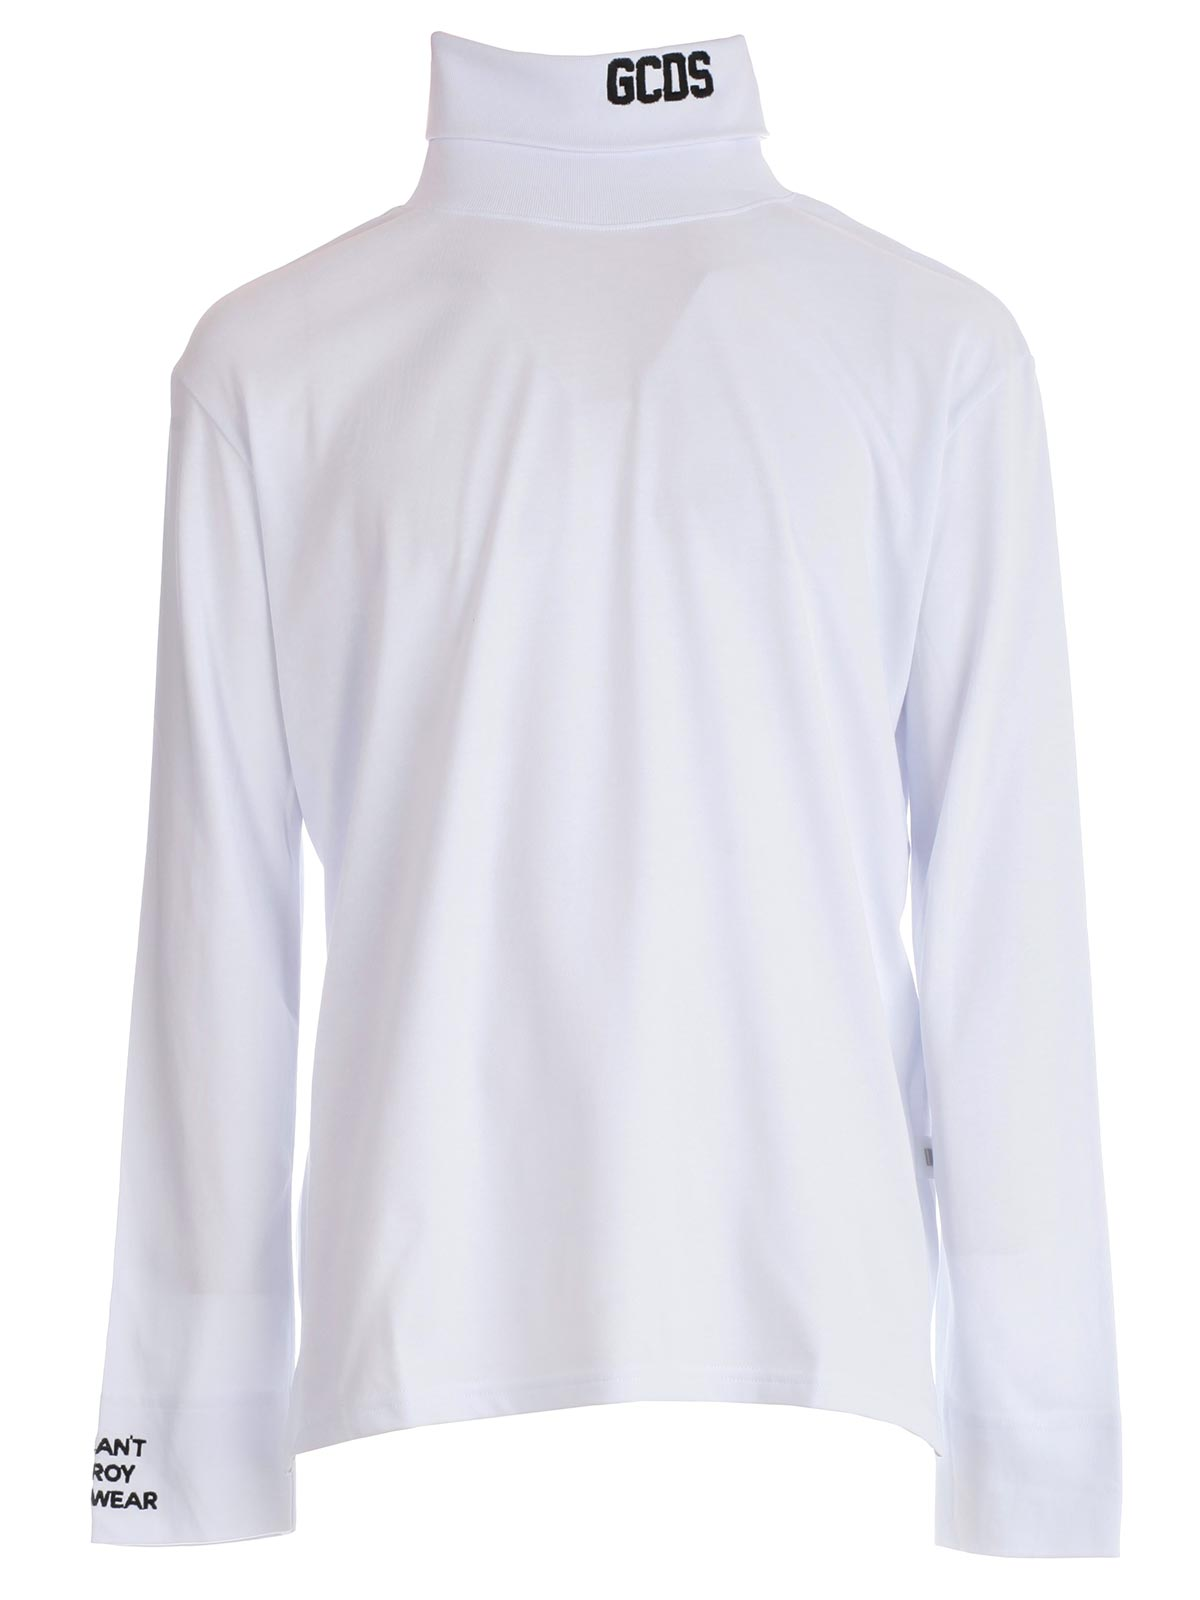 Picture of Gcds Jersey